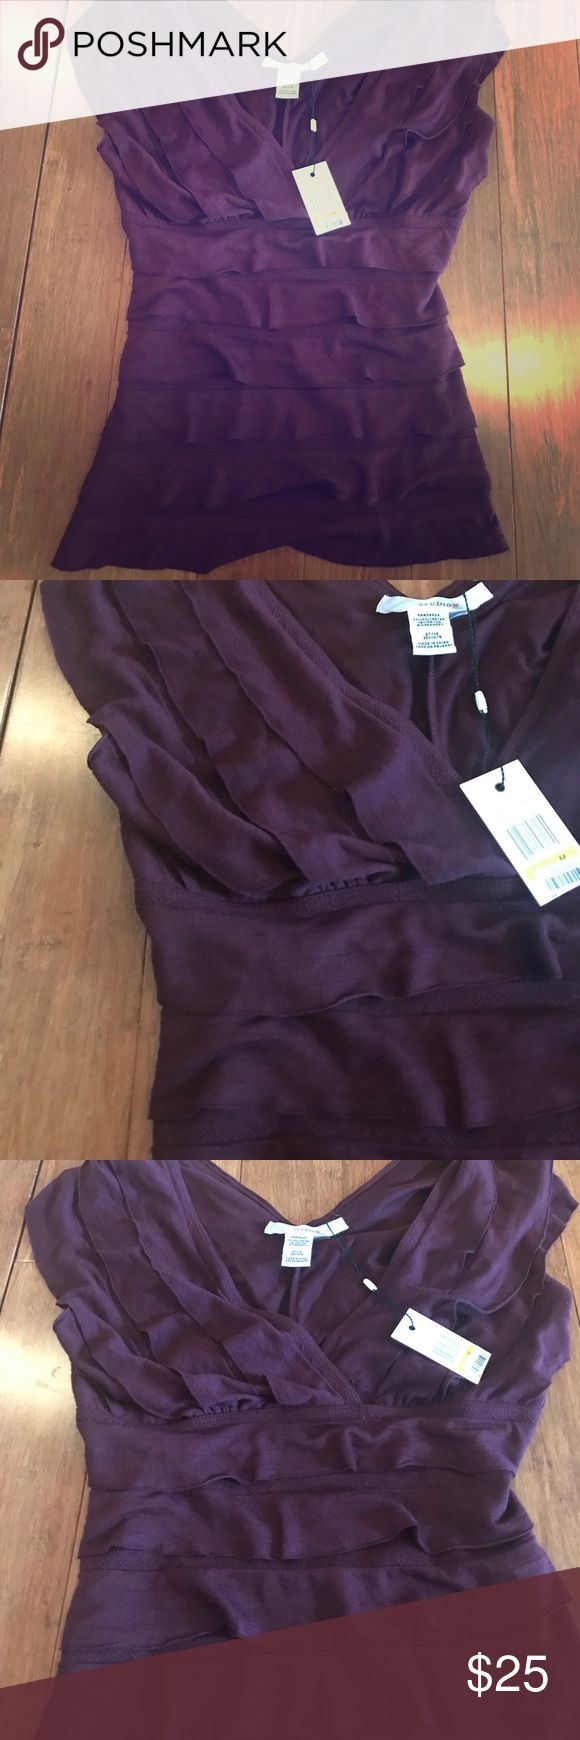 NWT Max Studio Bordeaux Ruffled Top New with Tags Studio M by Max Studio Bordeaux Ruffled Top. Size Medium. Perfect work top or pair with jeans and flats. Super soft! Max Studio Tops Blouses